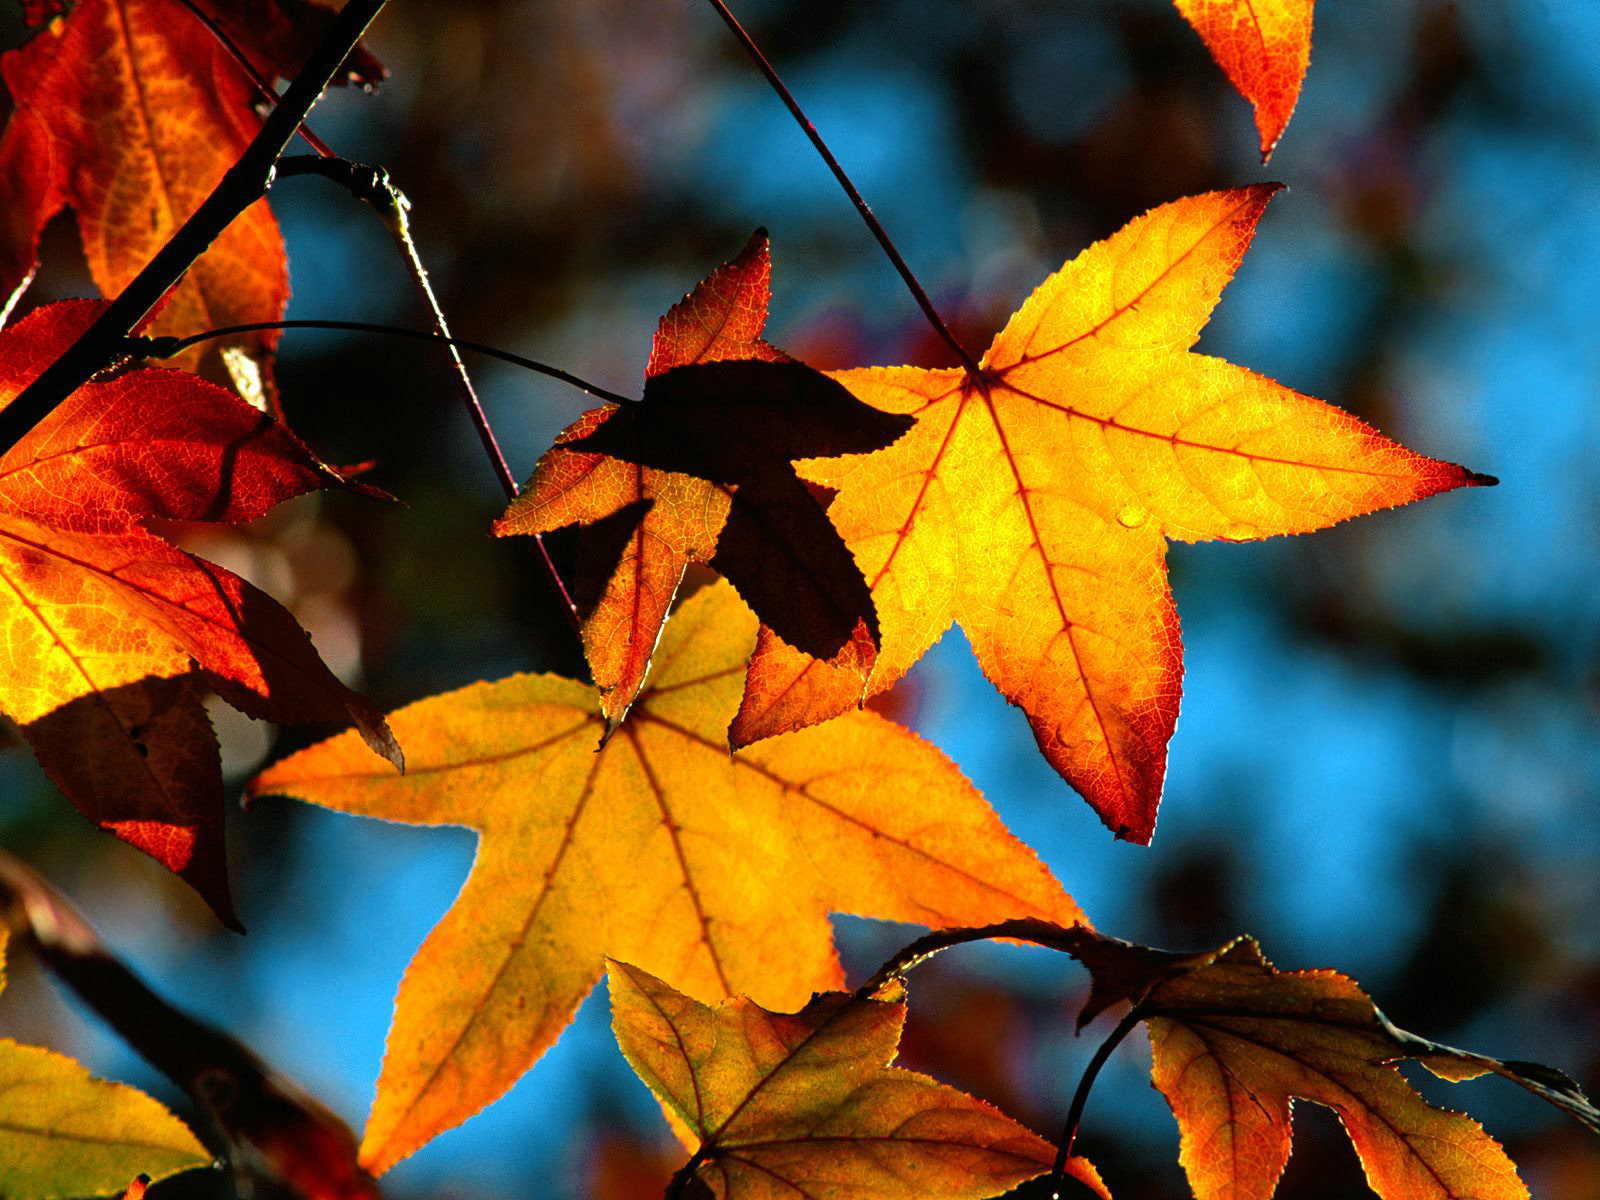 11848 download wallpaper Plants, Autumn, Leaves screensavers and pictures for free